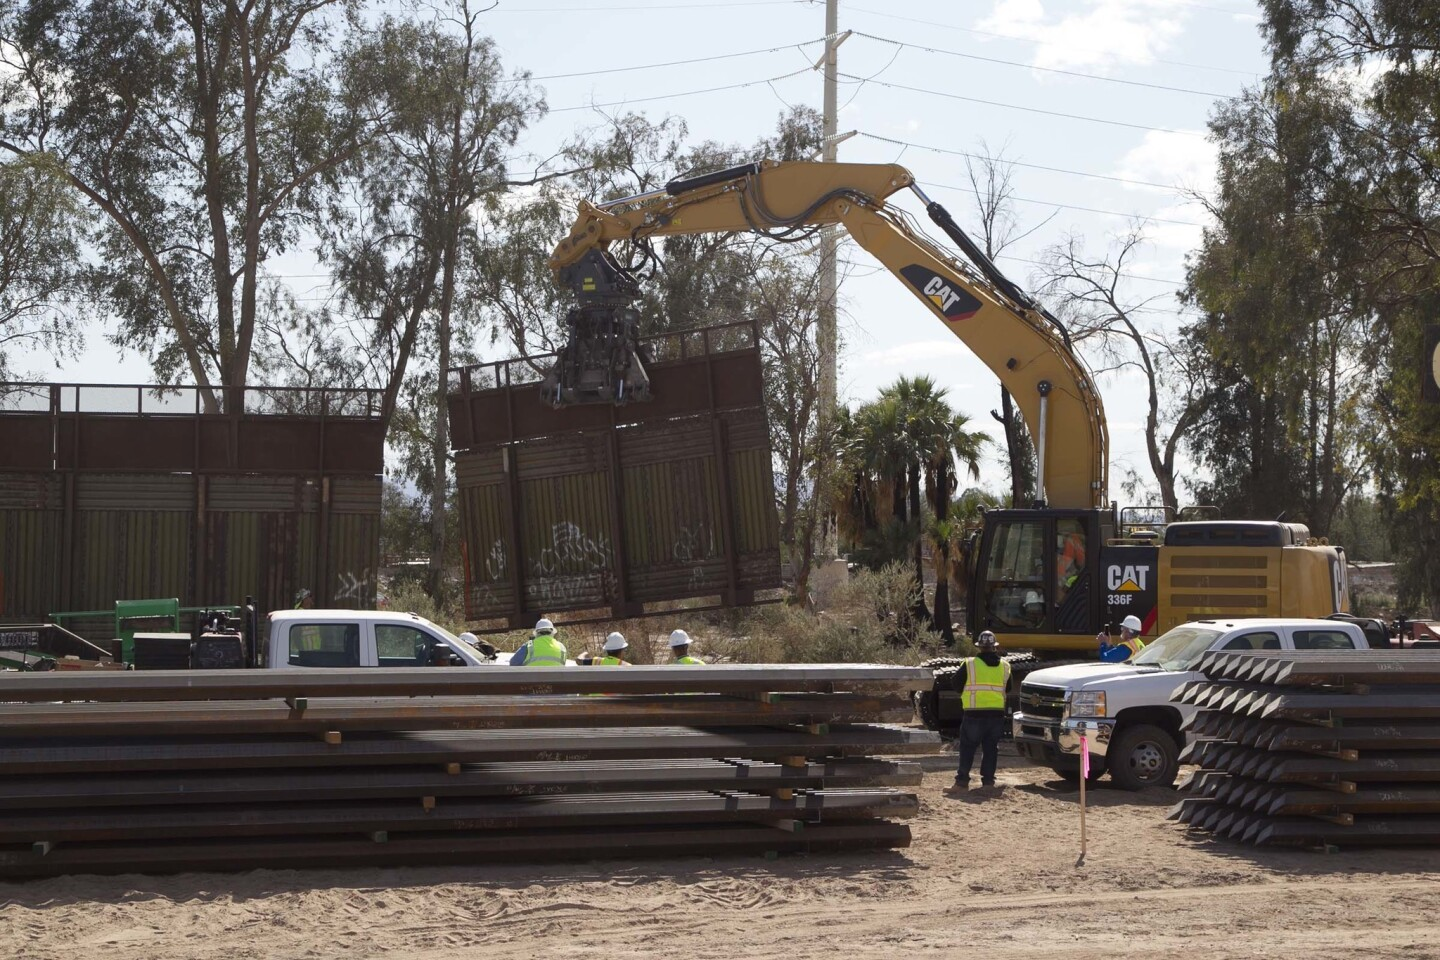 An excavator with a special clamp removes a section of the 1990'a era metal fence west of the Calexico Port of Entry that will be replaced with a steel bollard style structure that will be higher than the previous one.